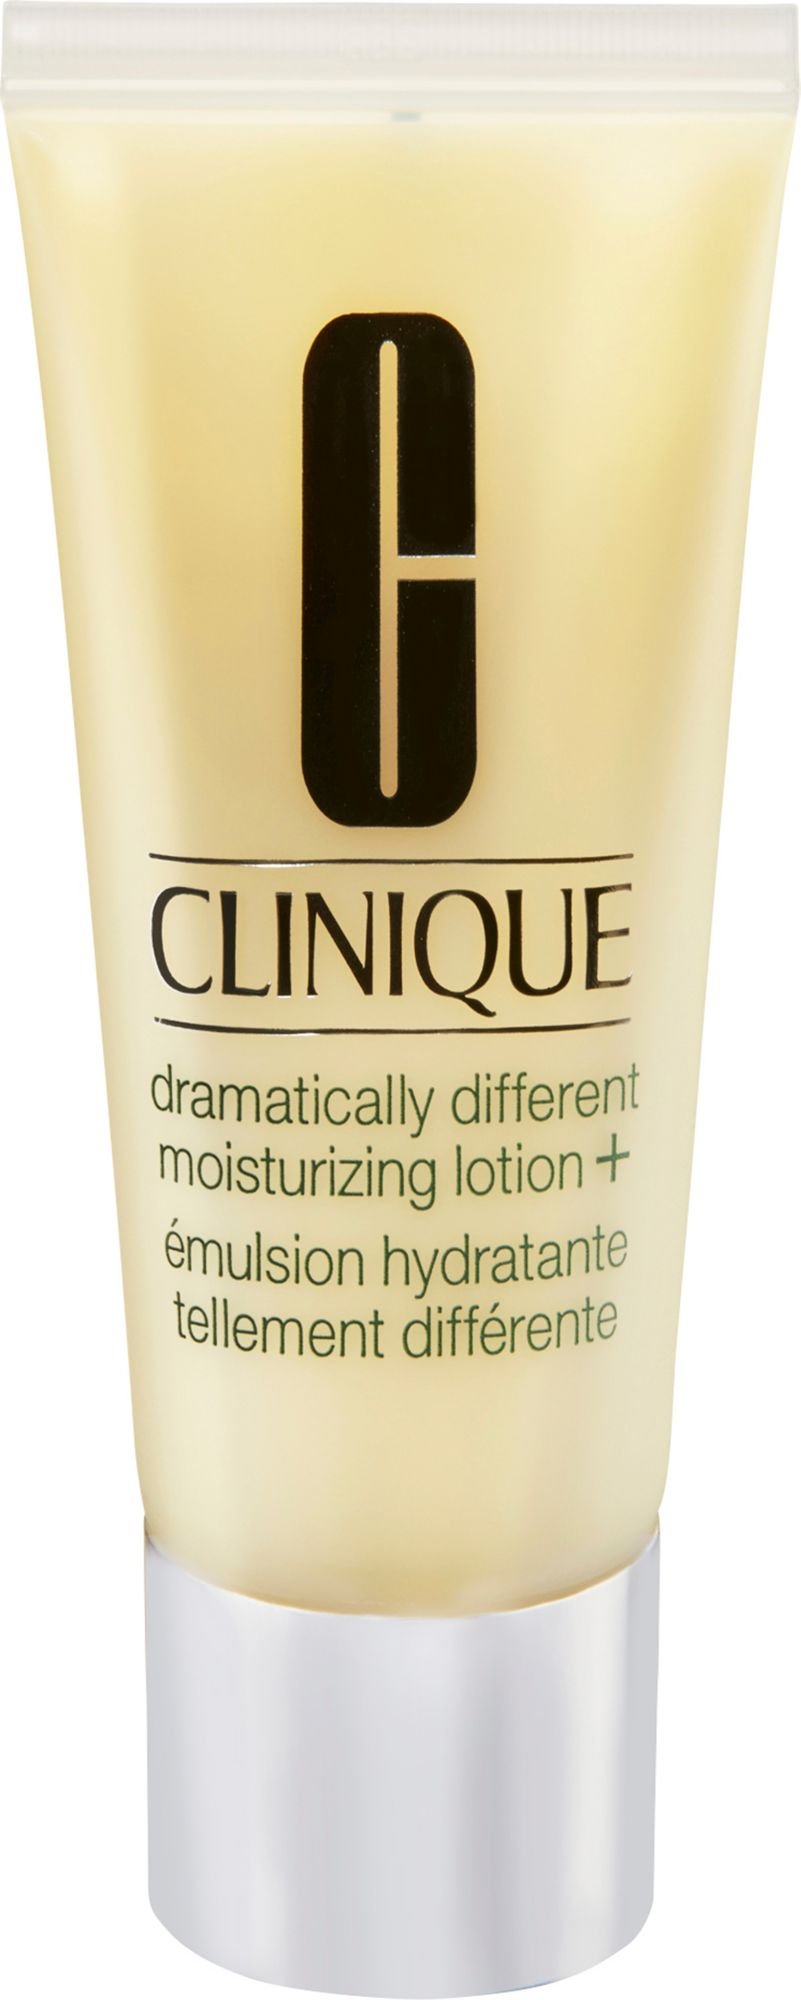 CLINIQUE Clinique, »Dramatically Different Moisturizing Lotion+«, Gesichtslotion